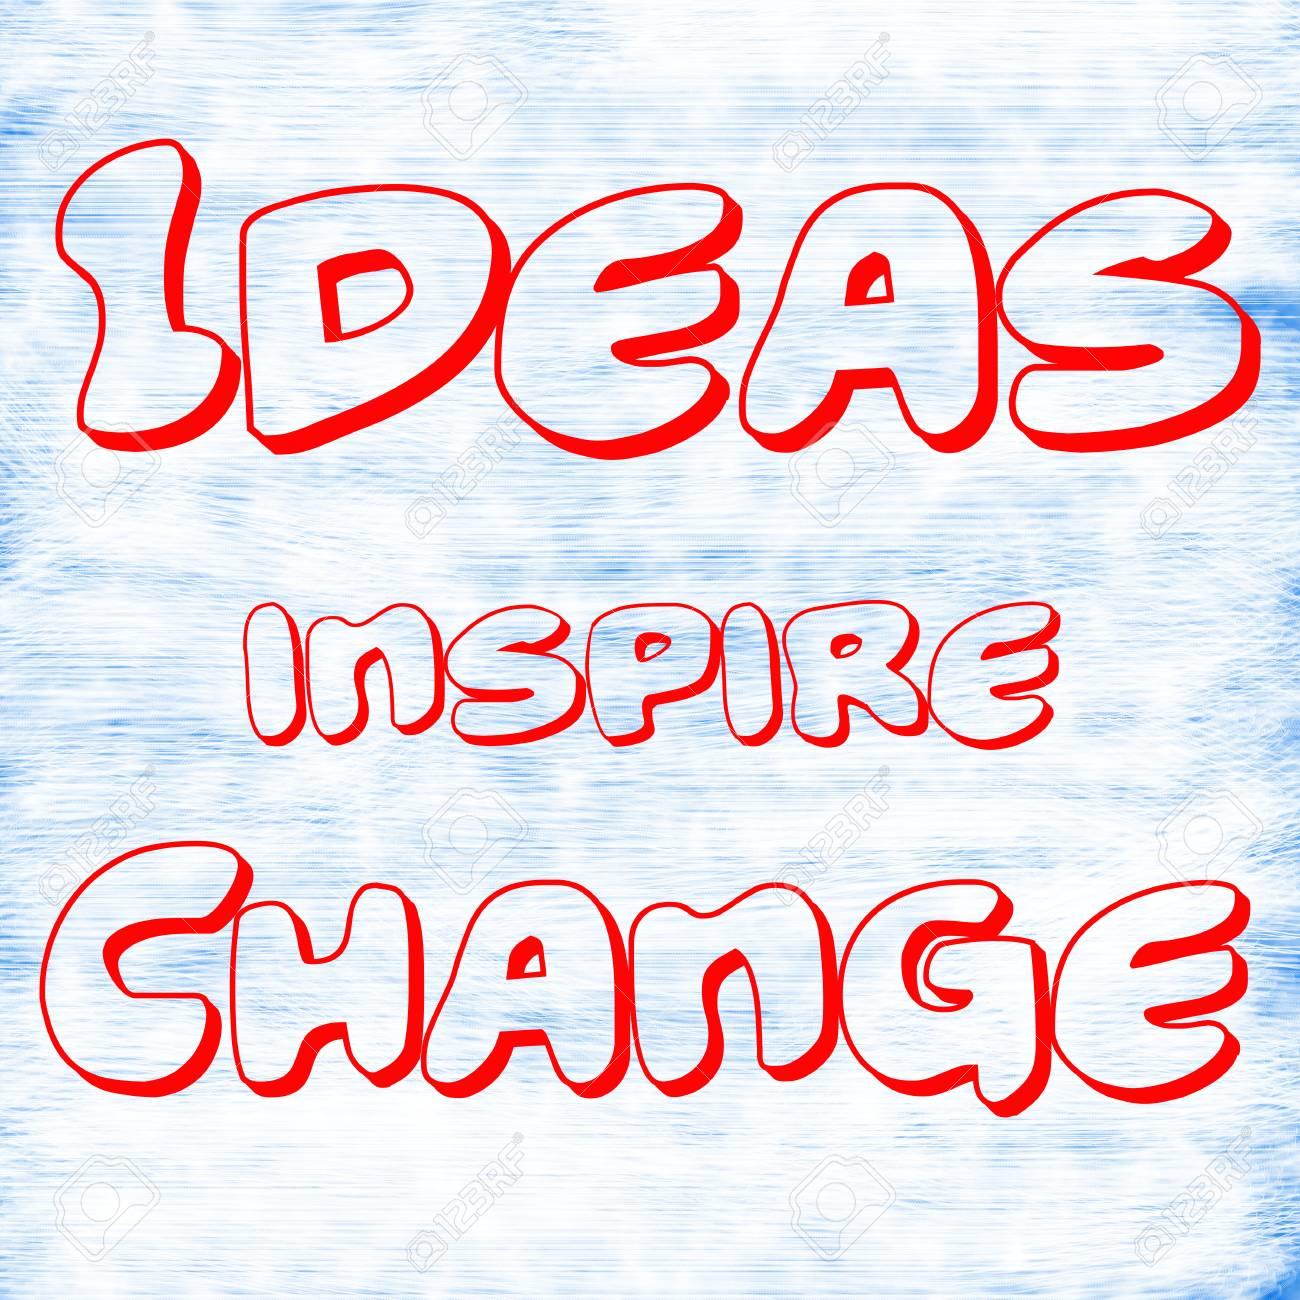 Ideas inspire Change Creative Inspiring Motivation Quote Concept